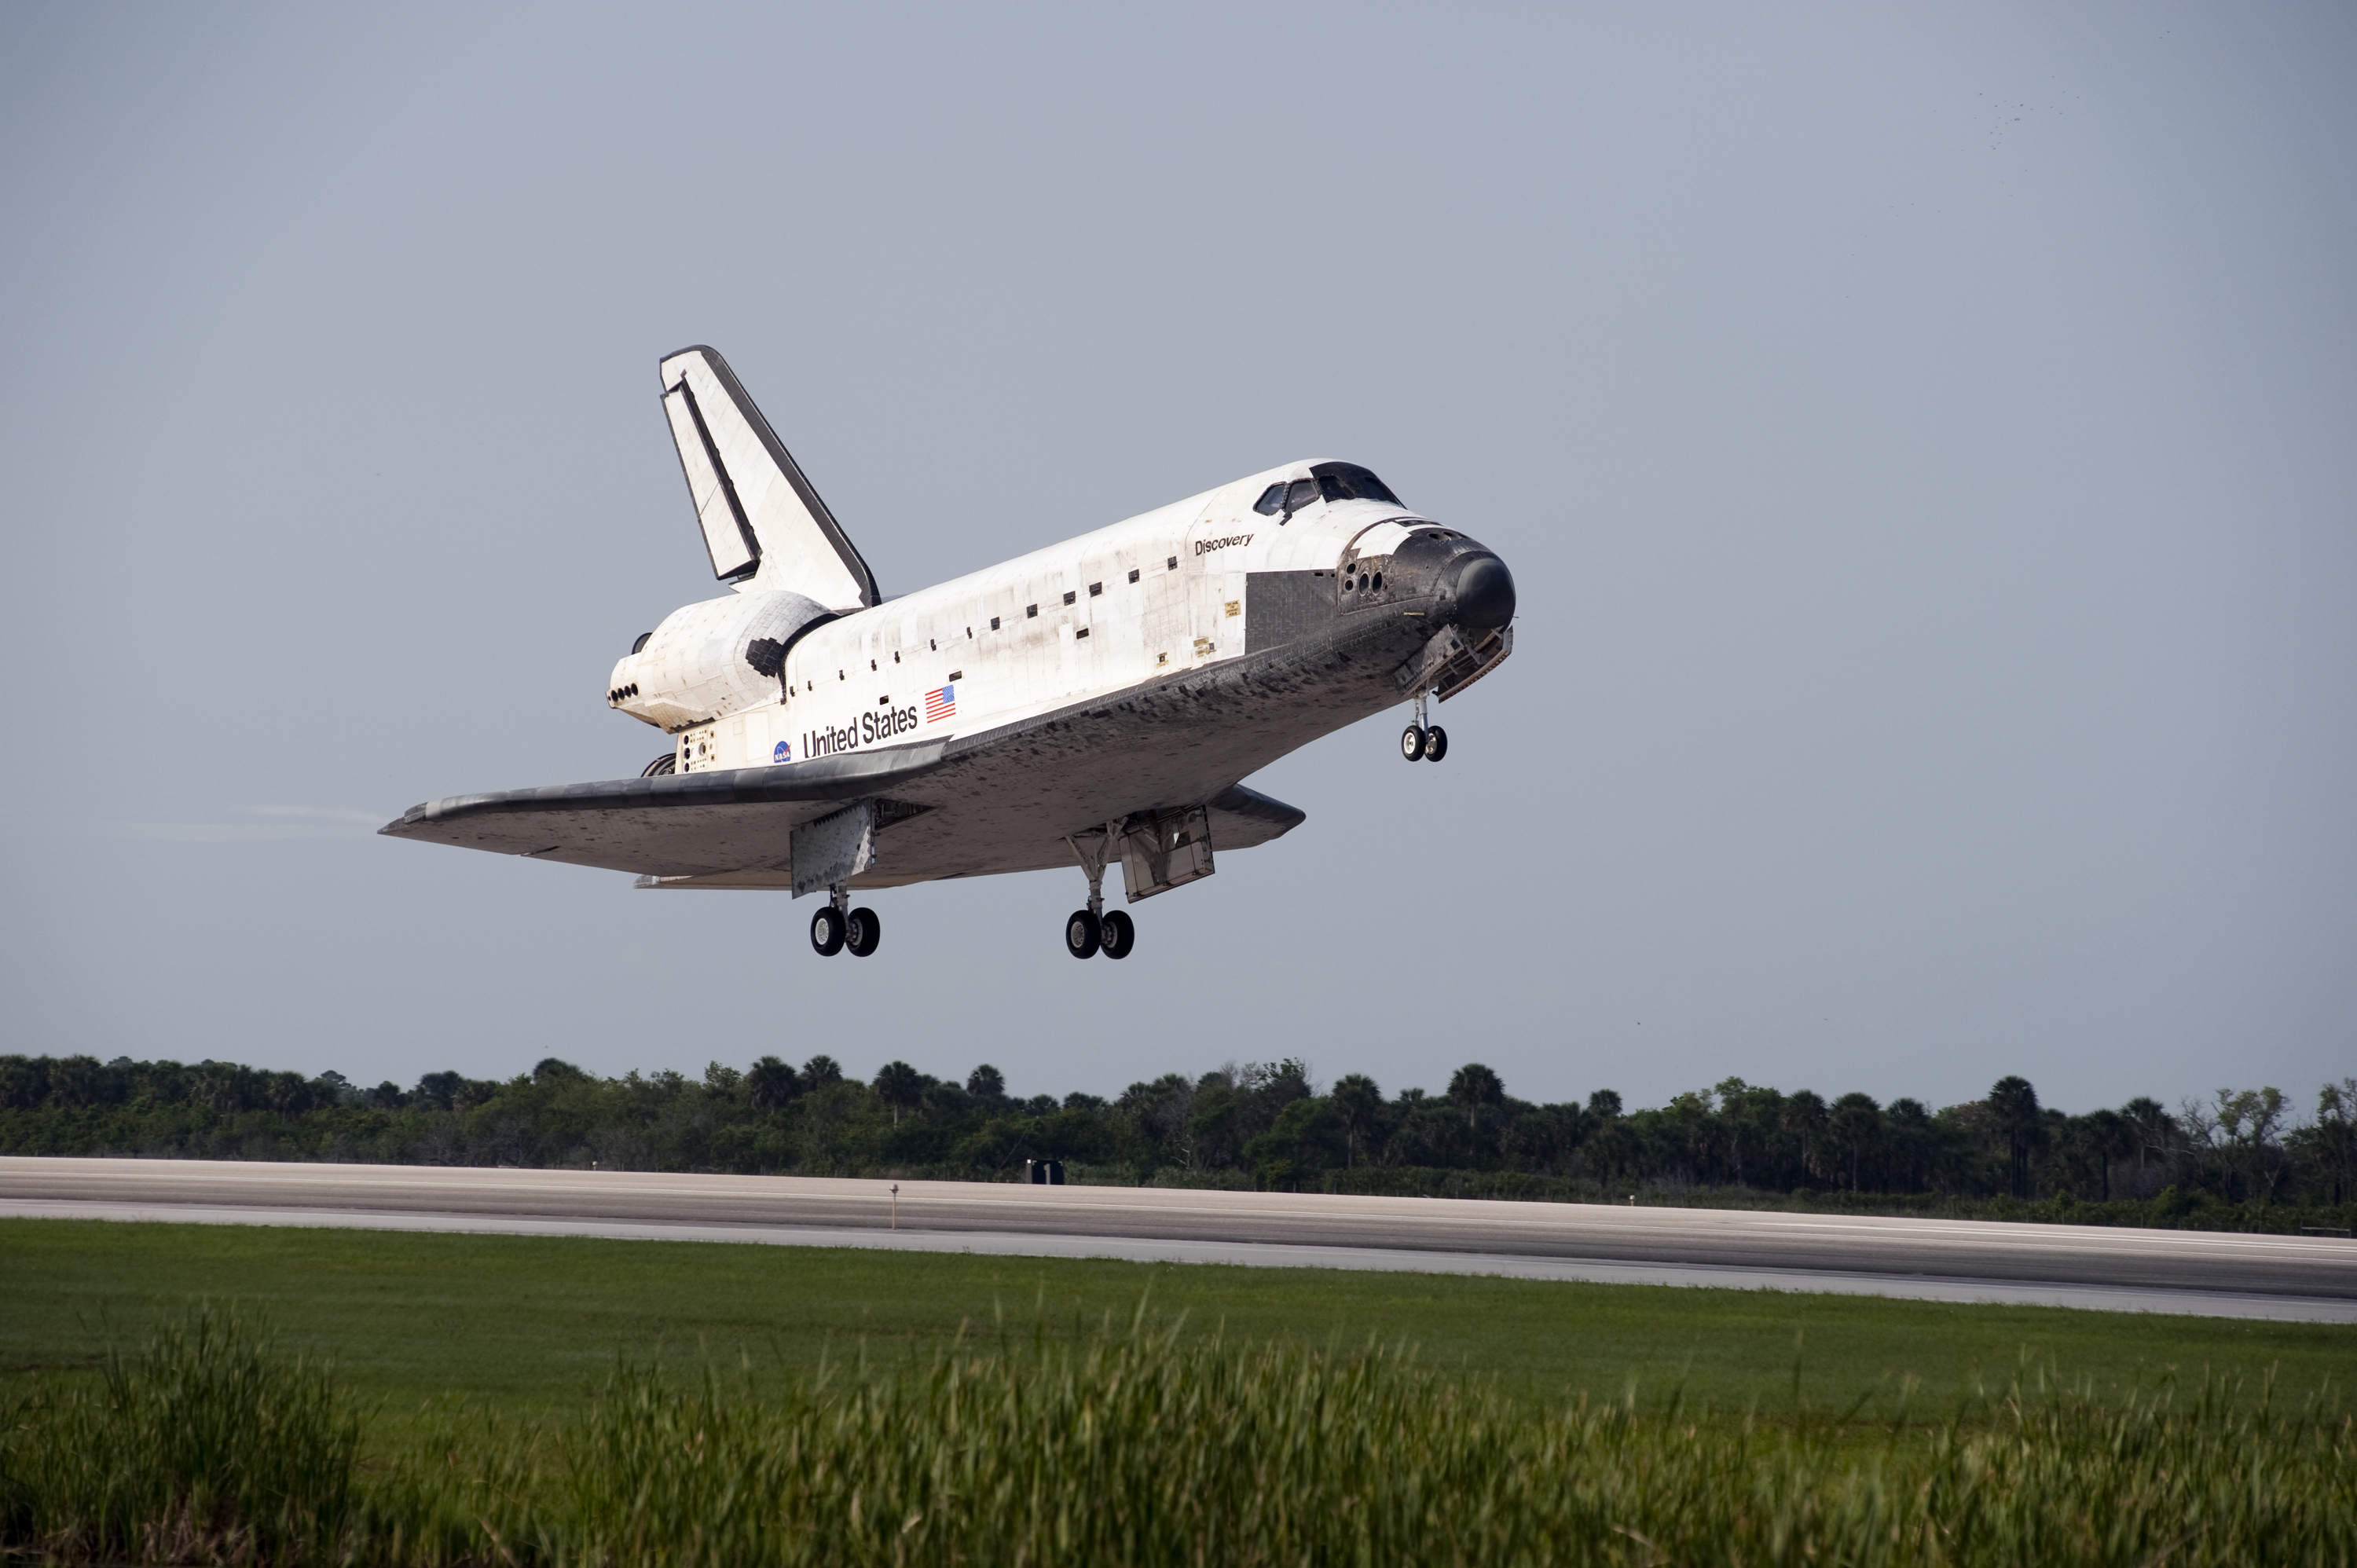 space shuttle discovery in la - photo #21